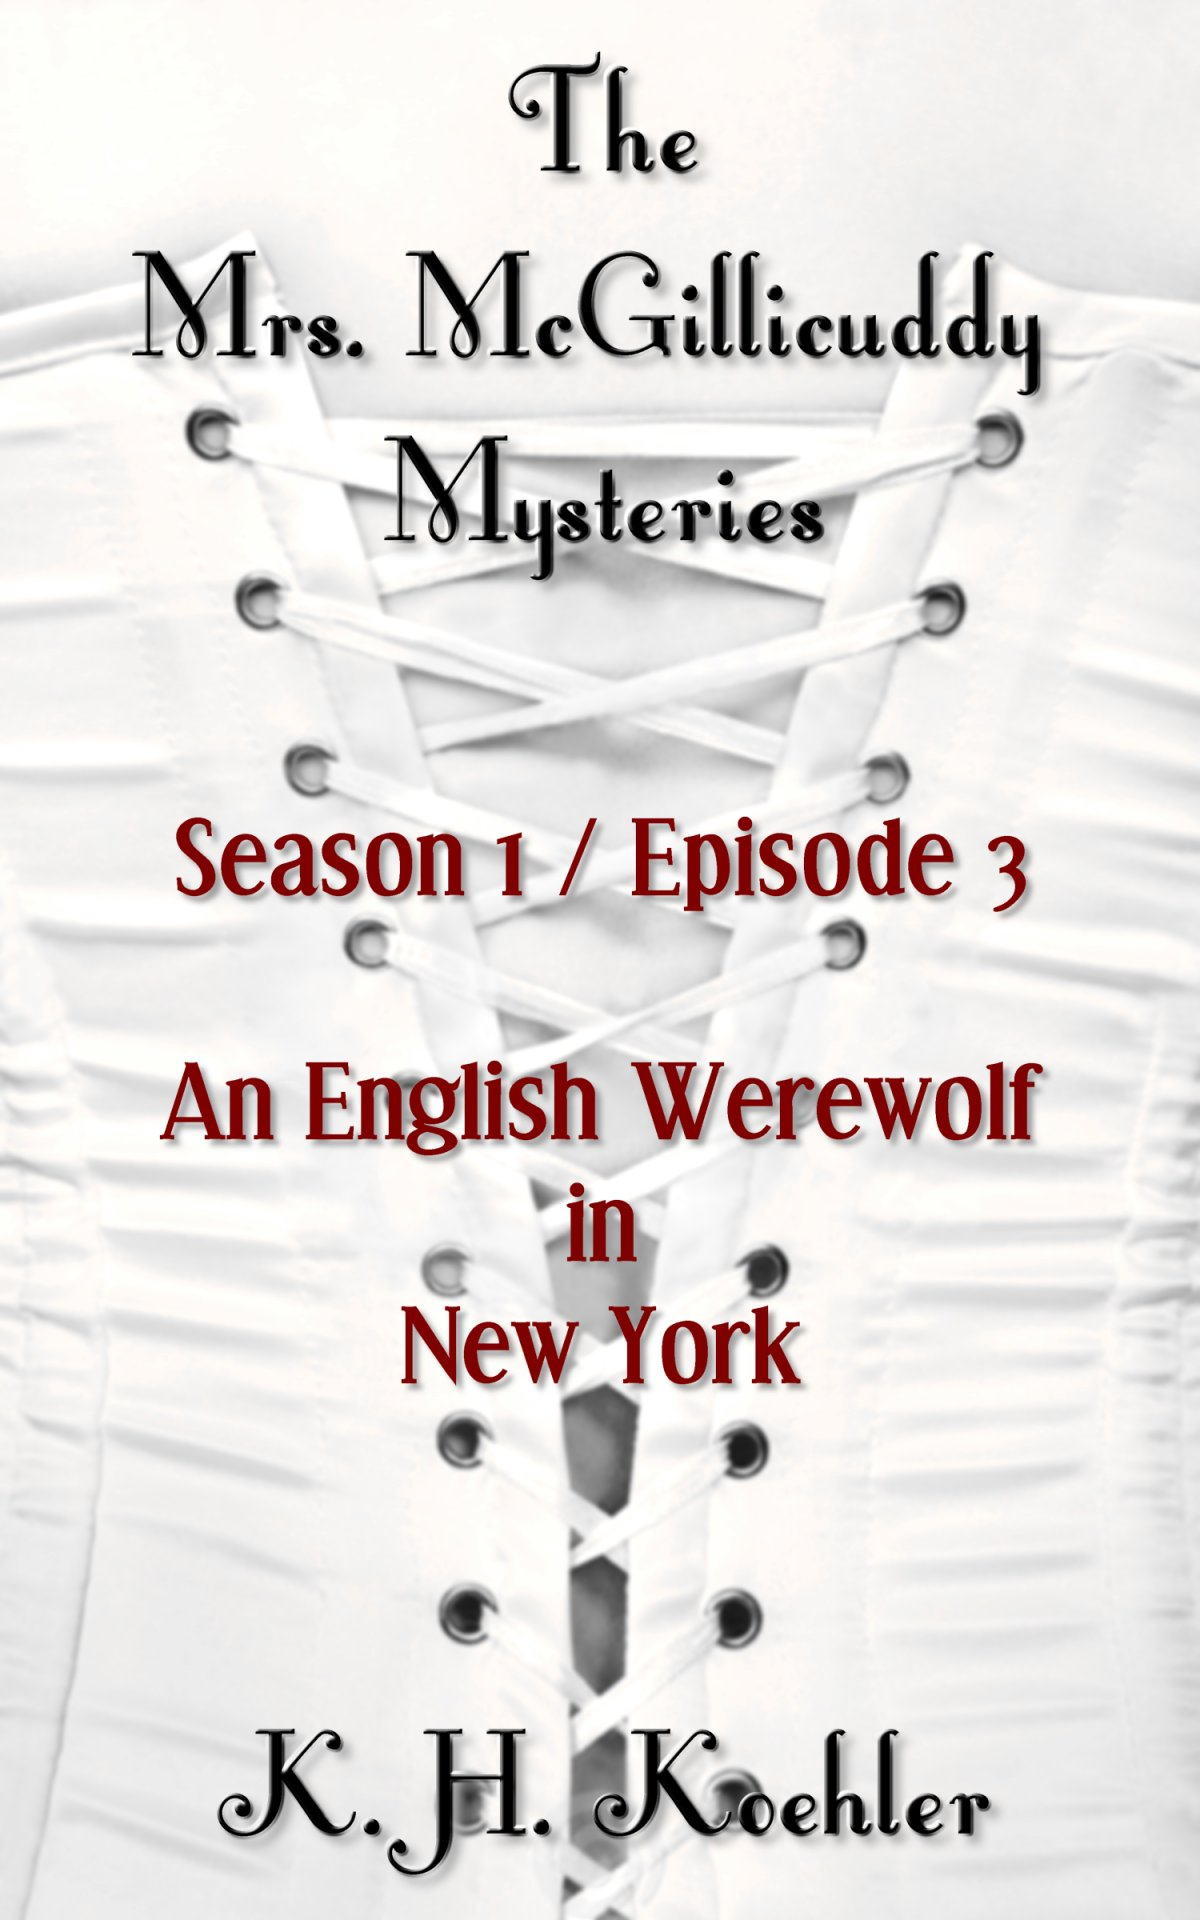 The Mrs. McGillicuddy Mysteries, the Series: Season 1, Episode 3: An English Werewolf in New York